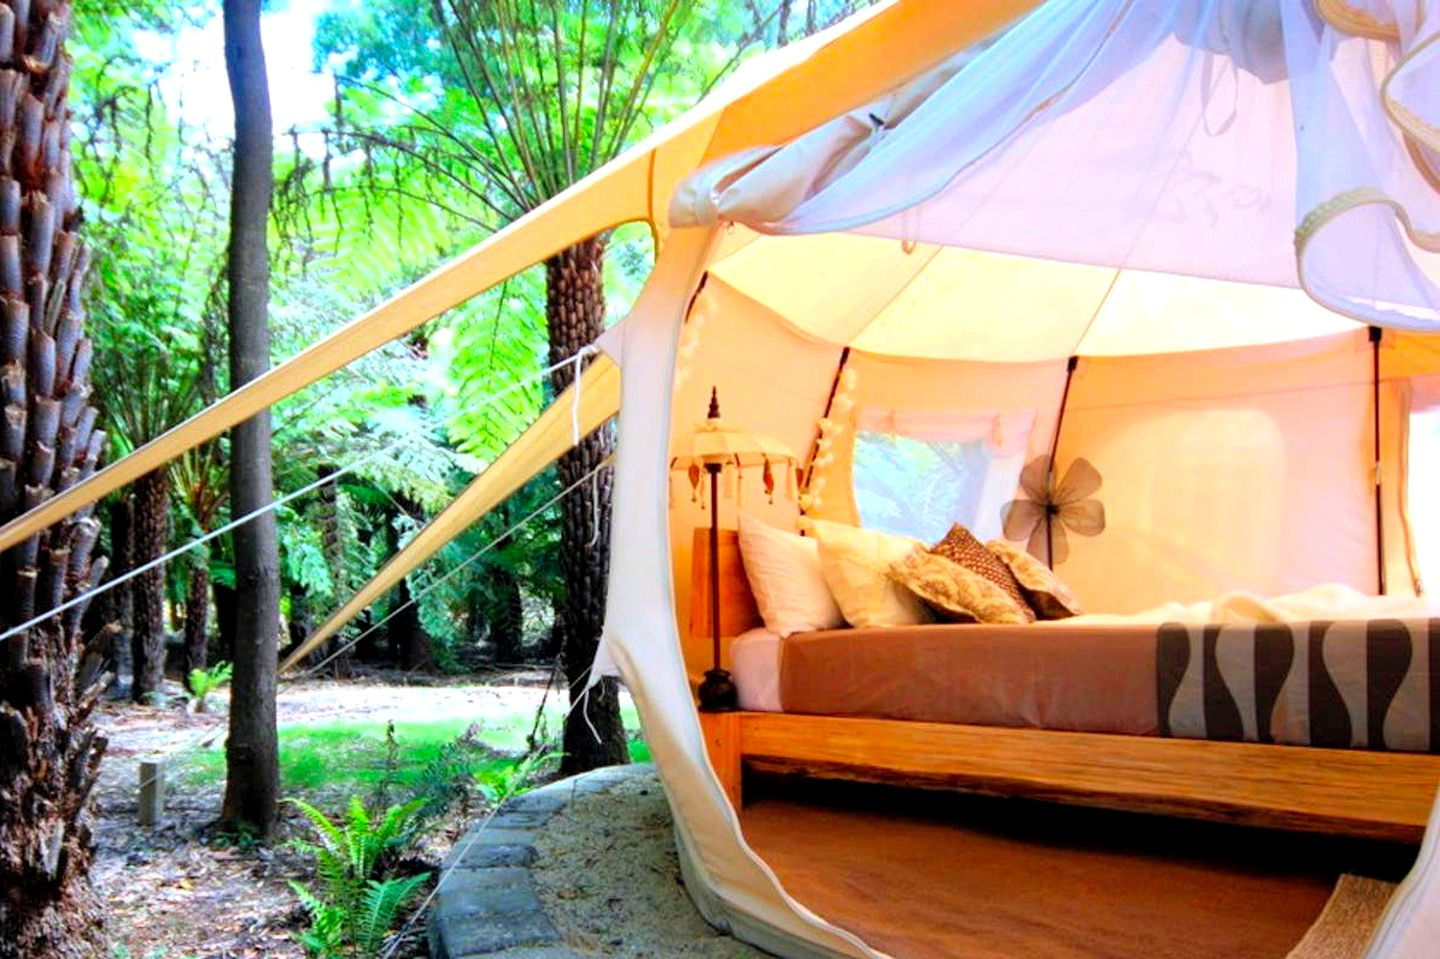 Bell tent rental for glamping in Victoria